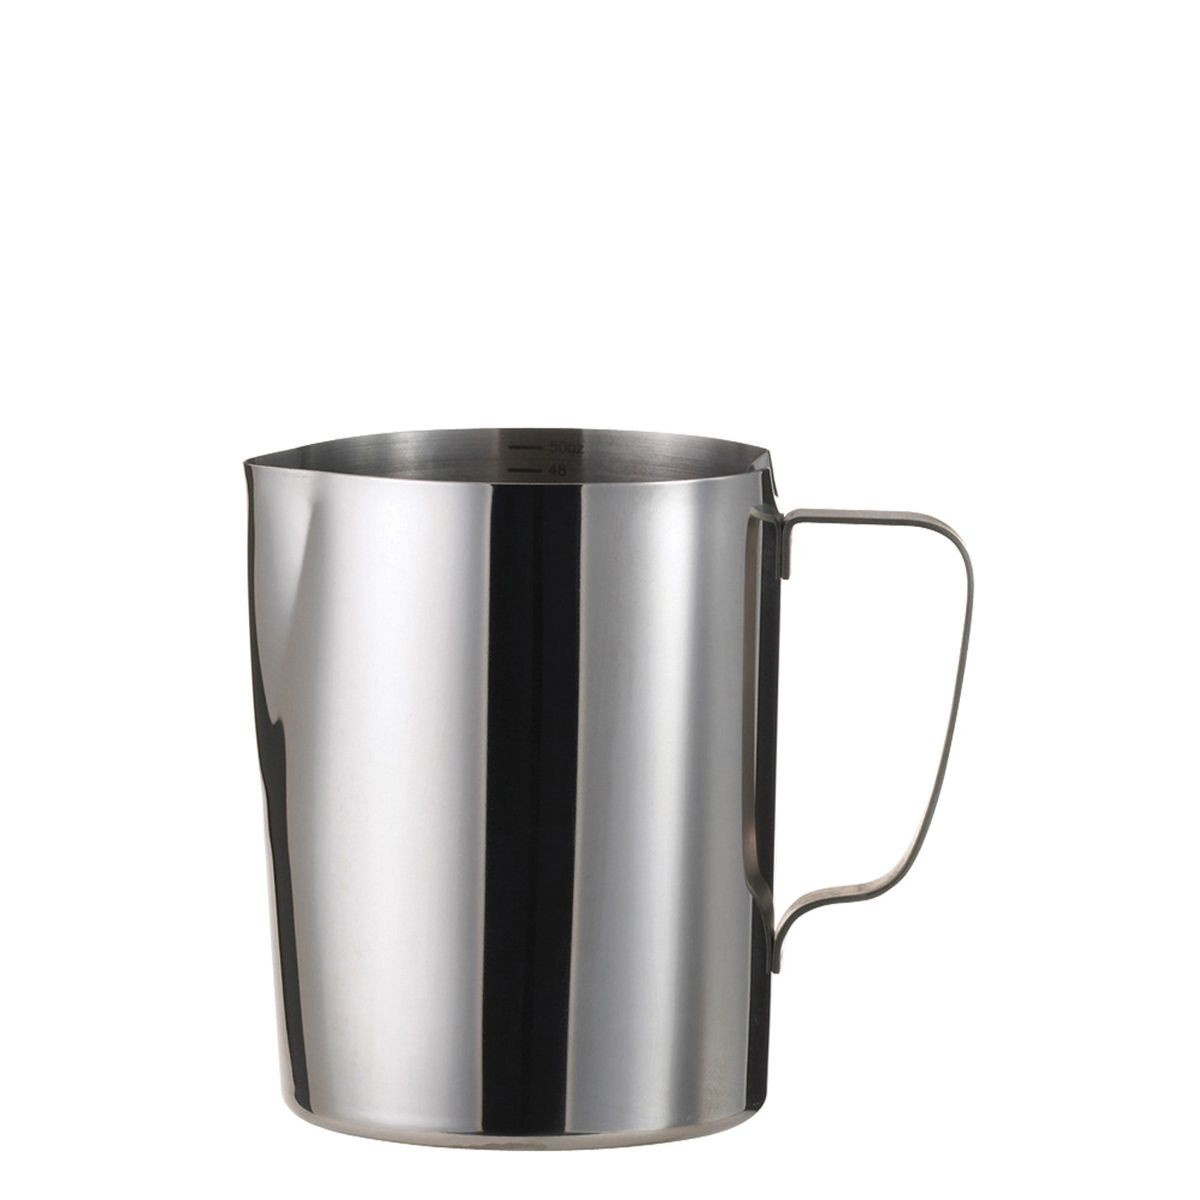 Service Ideas FROTH506 Frothing Pitcher 30 oz. with 6-oz. Increments